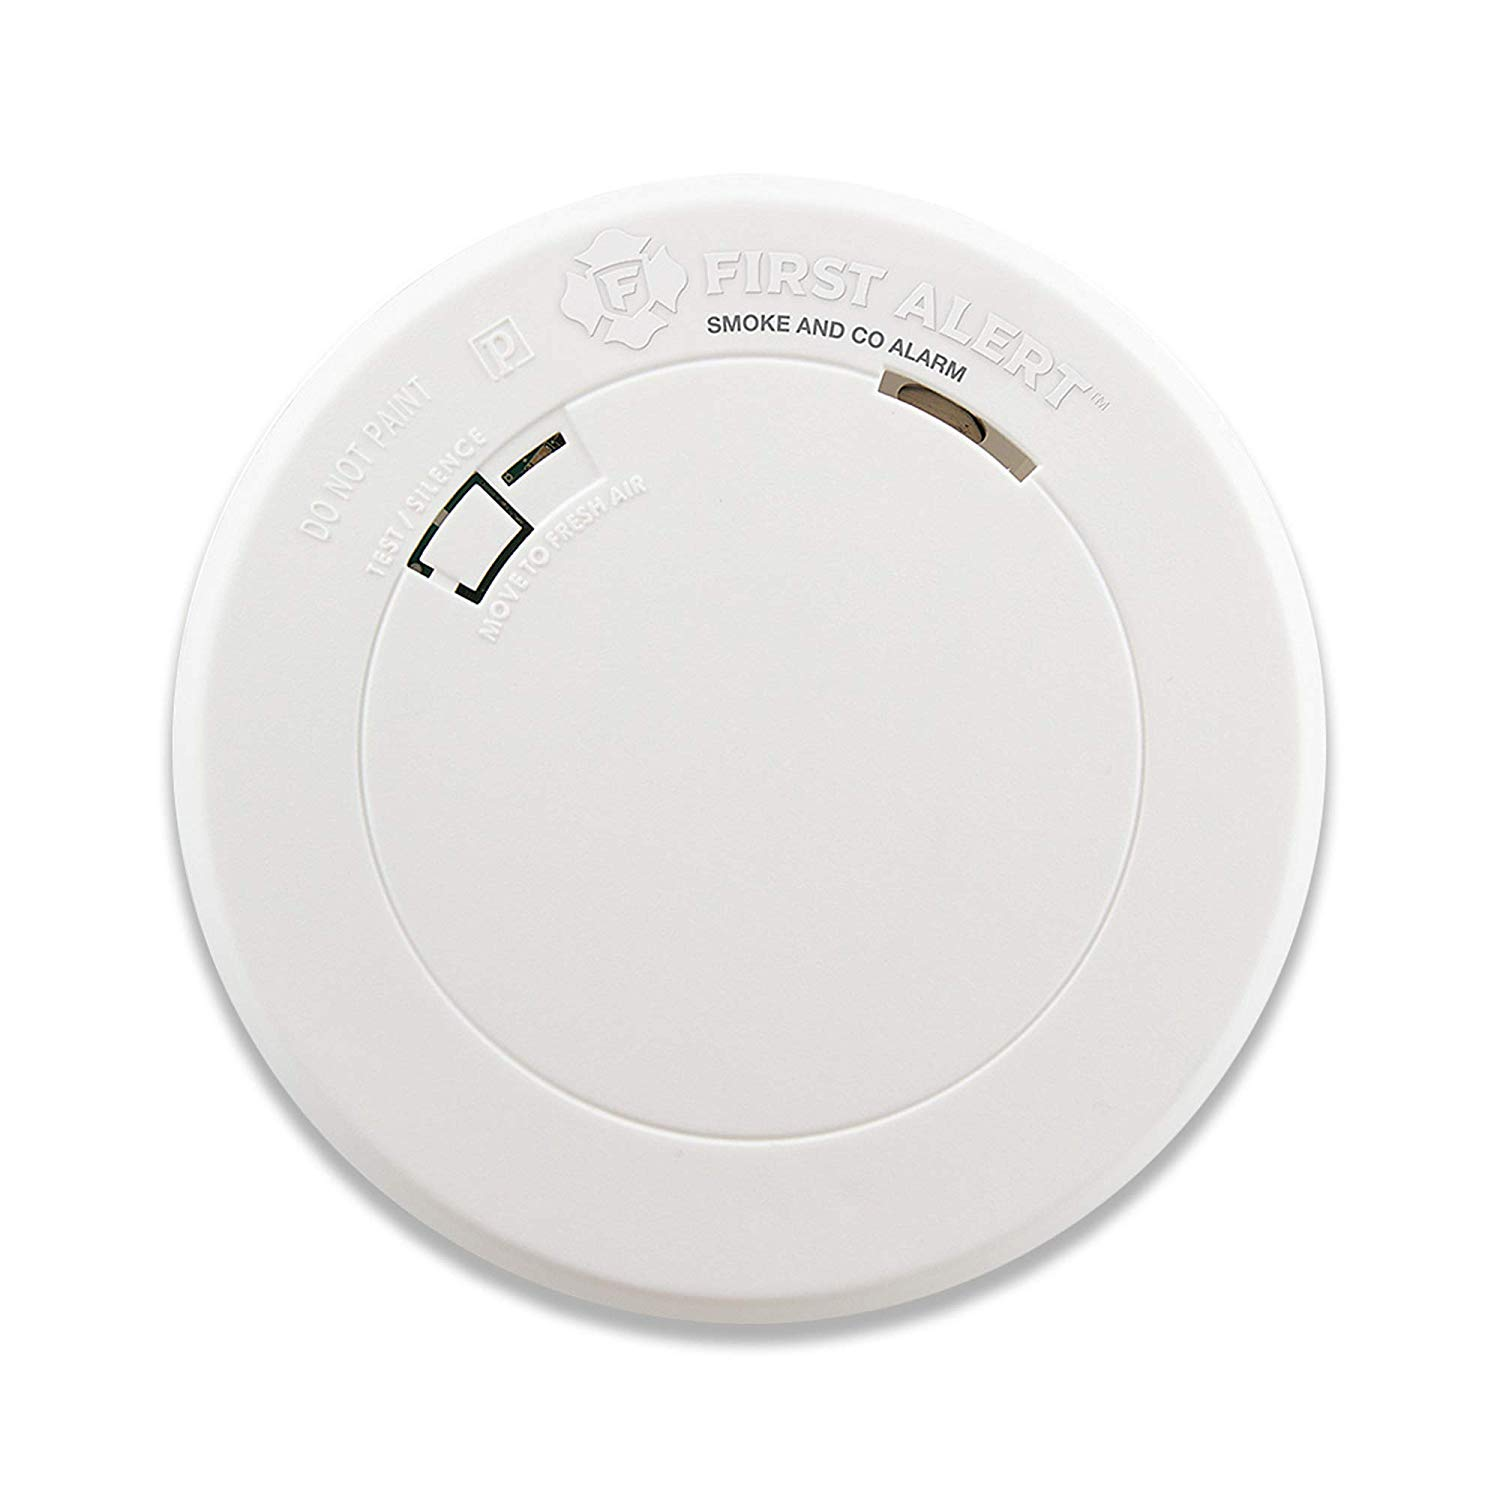 First Alert Smoke Detector and Carbon Monoxide Detector Alarm with Built-In 10-Year Battery, BRK ...